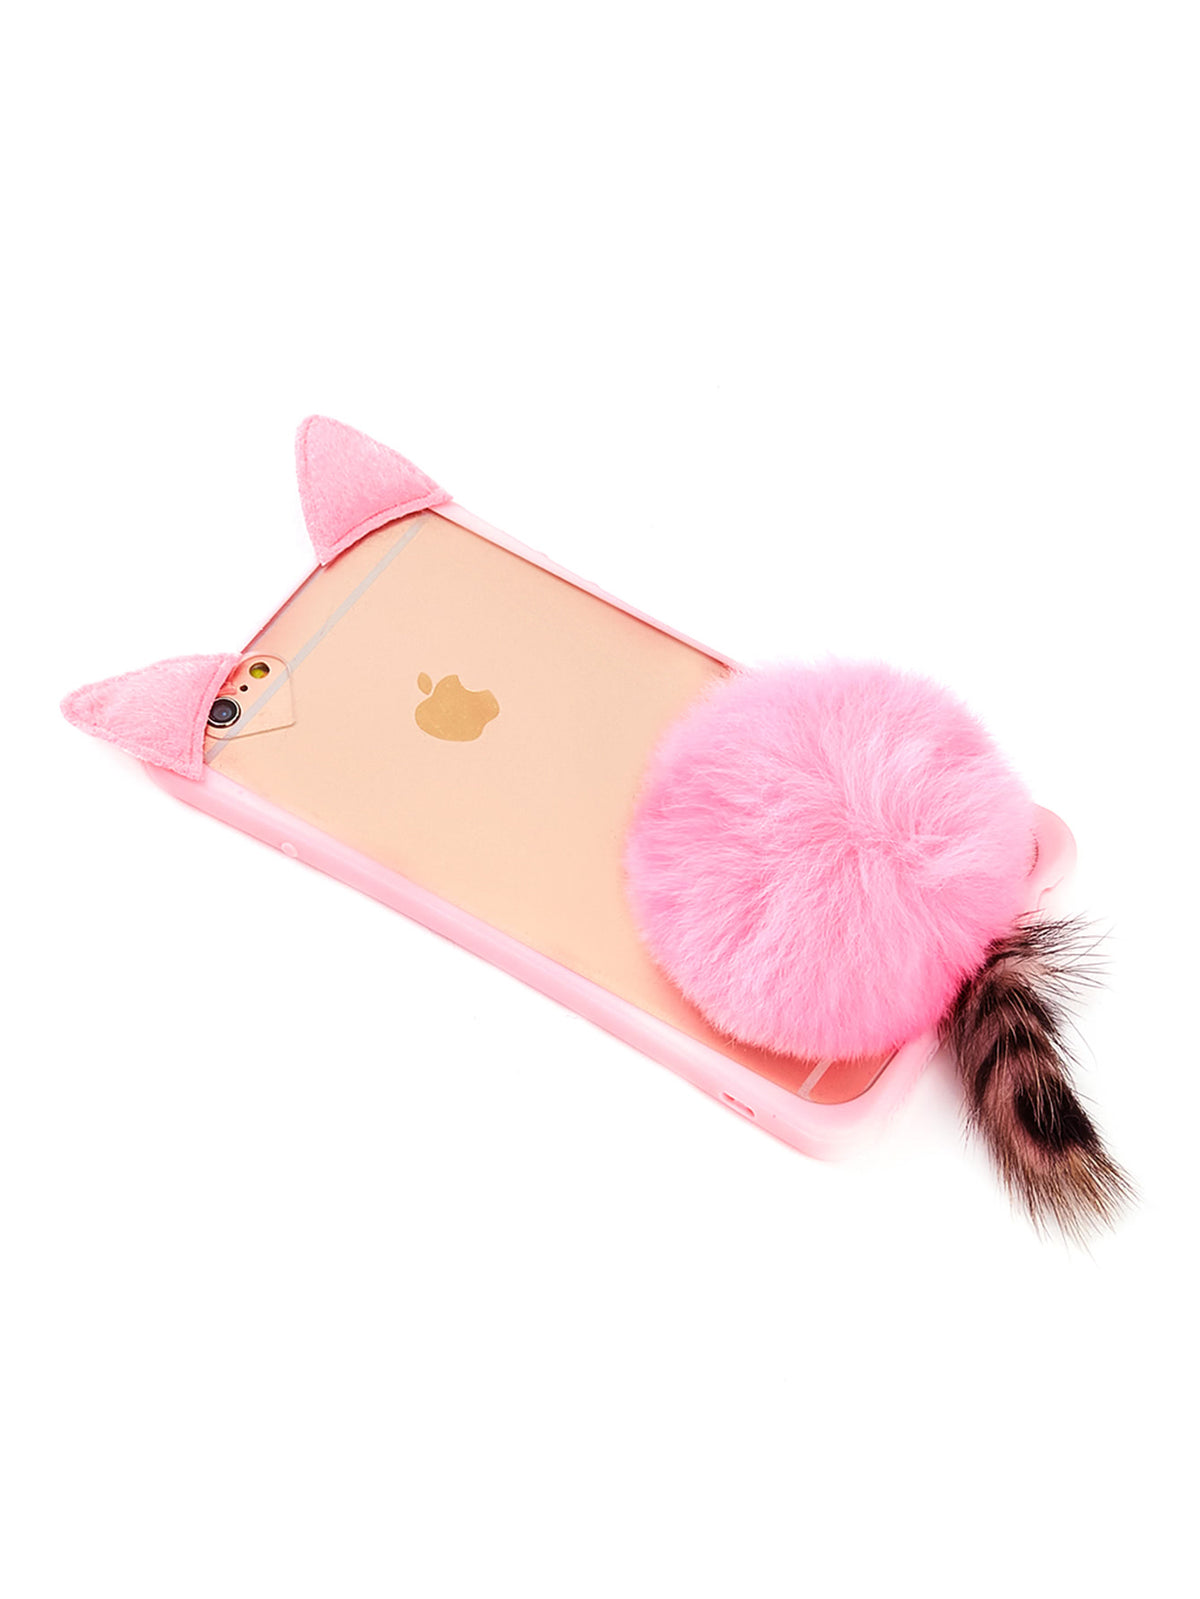 Cat Design iPhone Case With Pom Pom